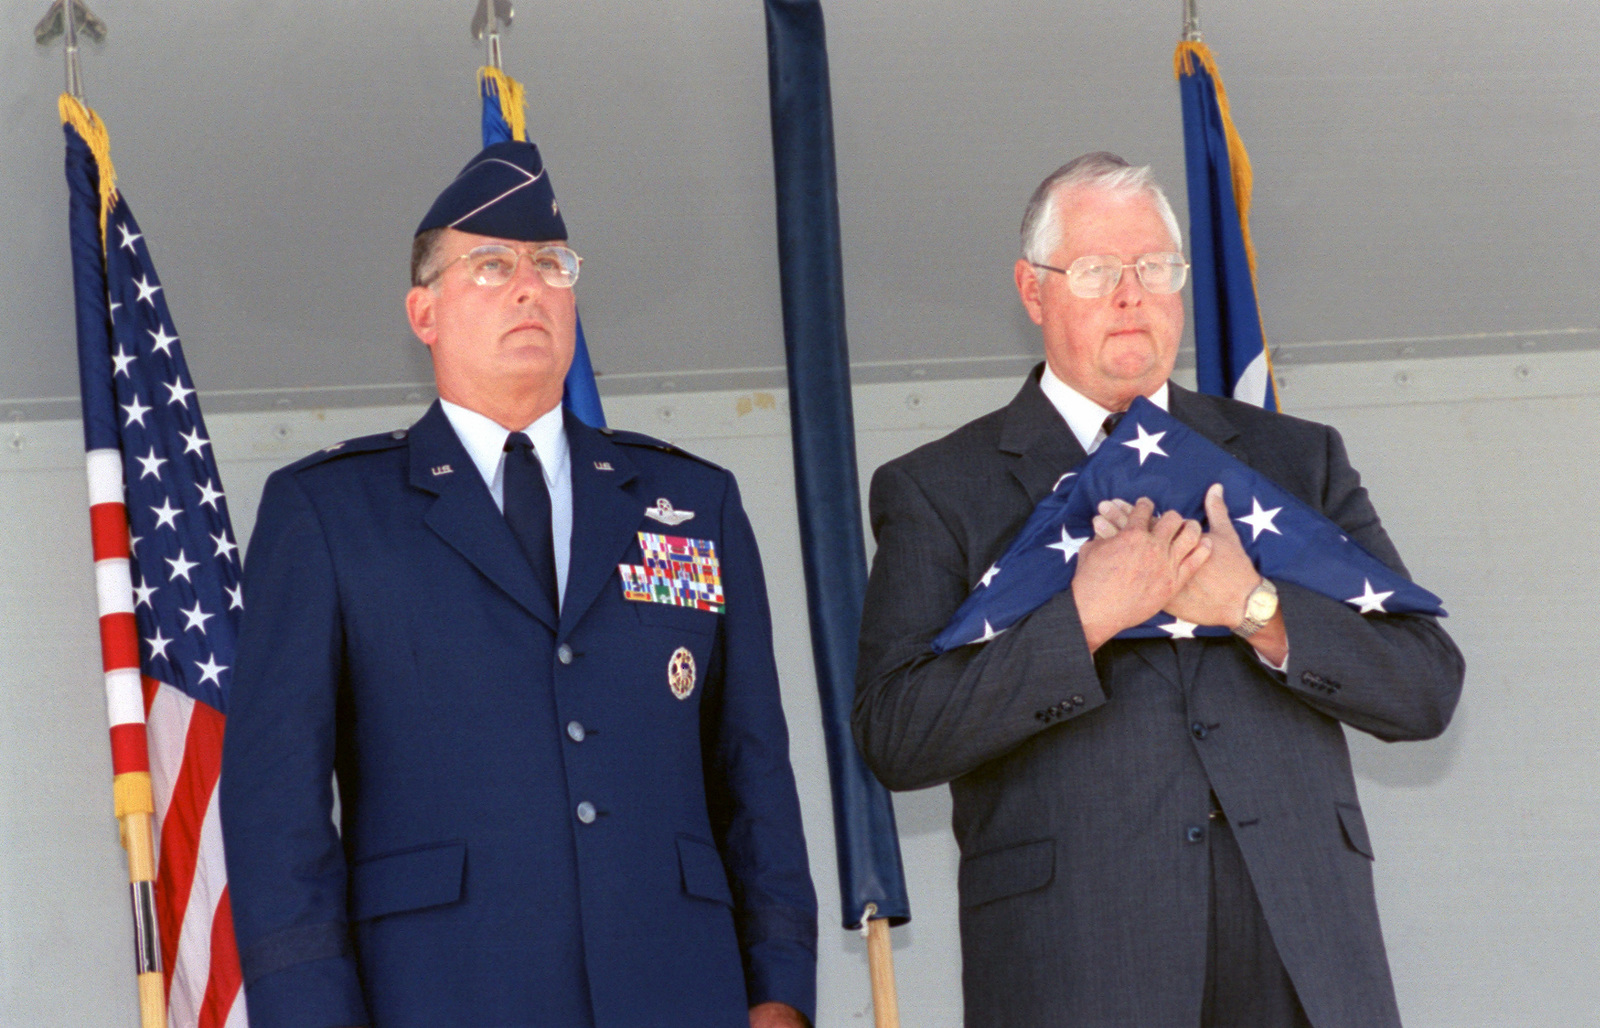 Tommy Jordan Executive Director, San Antonio - Air Logistics Center (SA-ALC) holds the last American flag to fly over Kelly AFB. Brigadier General (BGEN) Robert Murdock, USAF, SA-ALC, Commander, stands next to him. Although the closing ceremony is in history books, government officials still actually own Kelly property and will until federal and state environmental regulators okay remedies for the installation's 30 sites that need environmental clean-up, according to federal law provisions